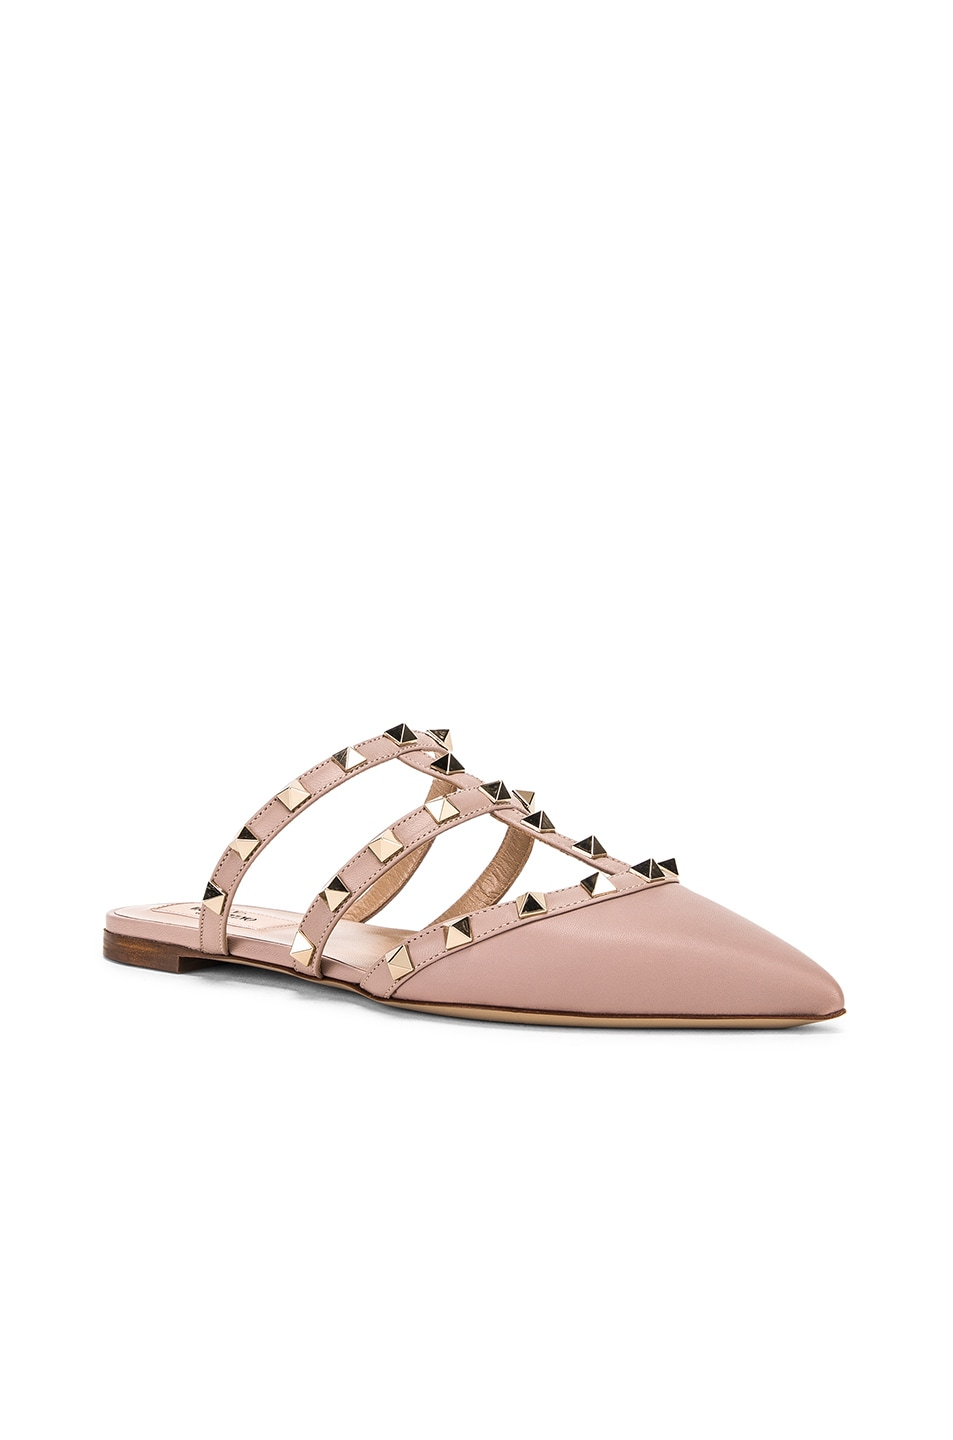 Image 2 of Valentino Rockstud Mules in Poudre